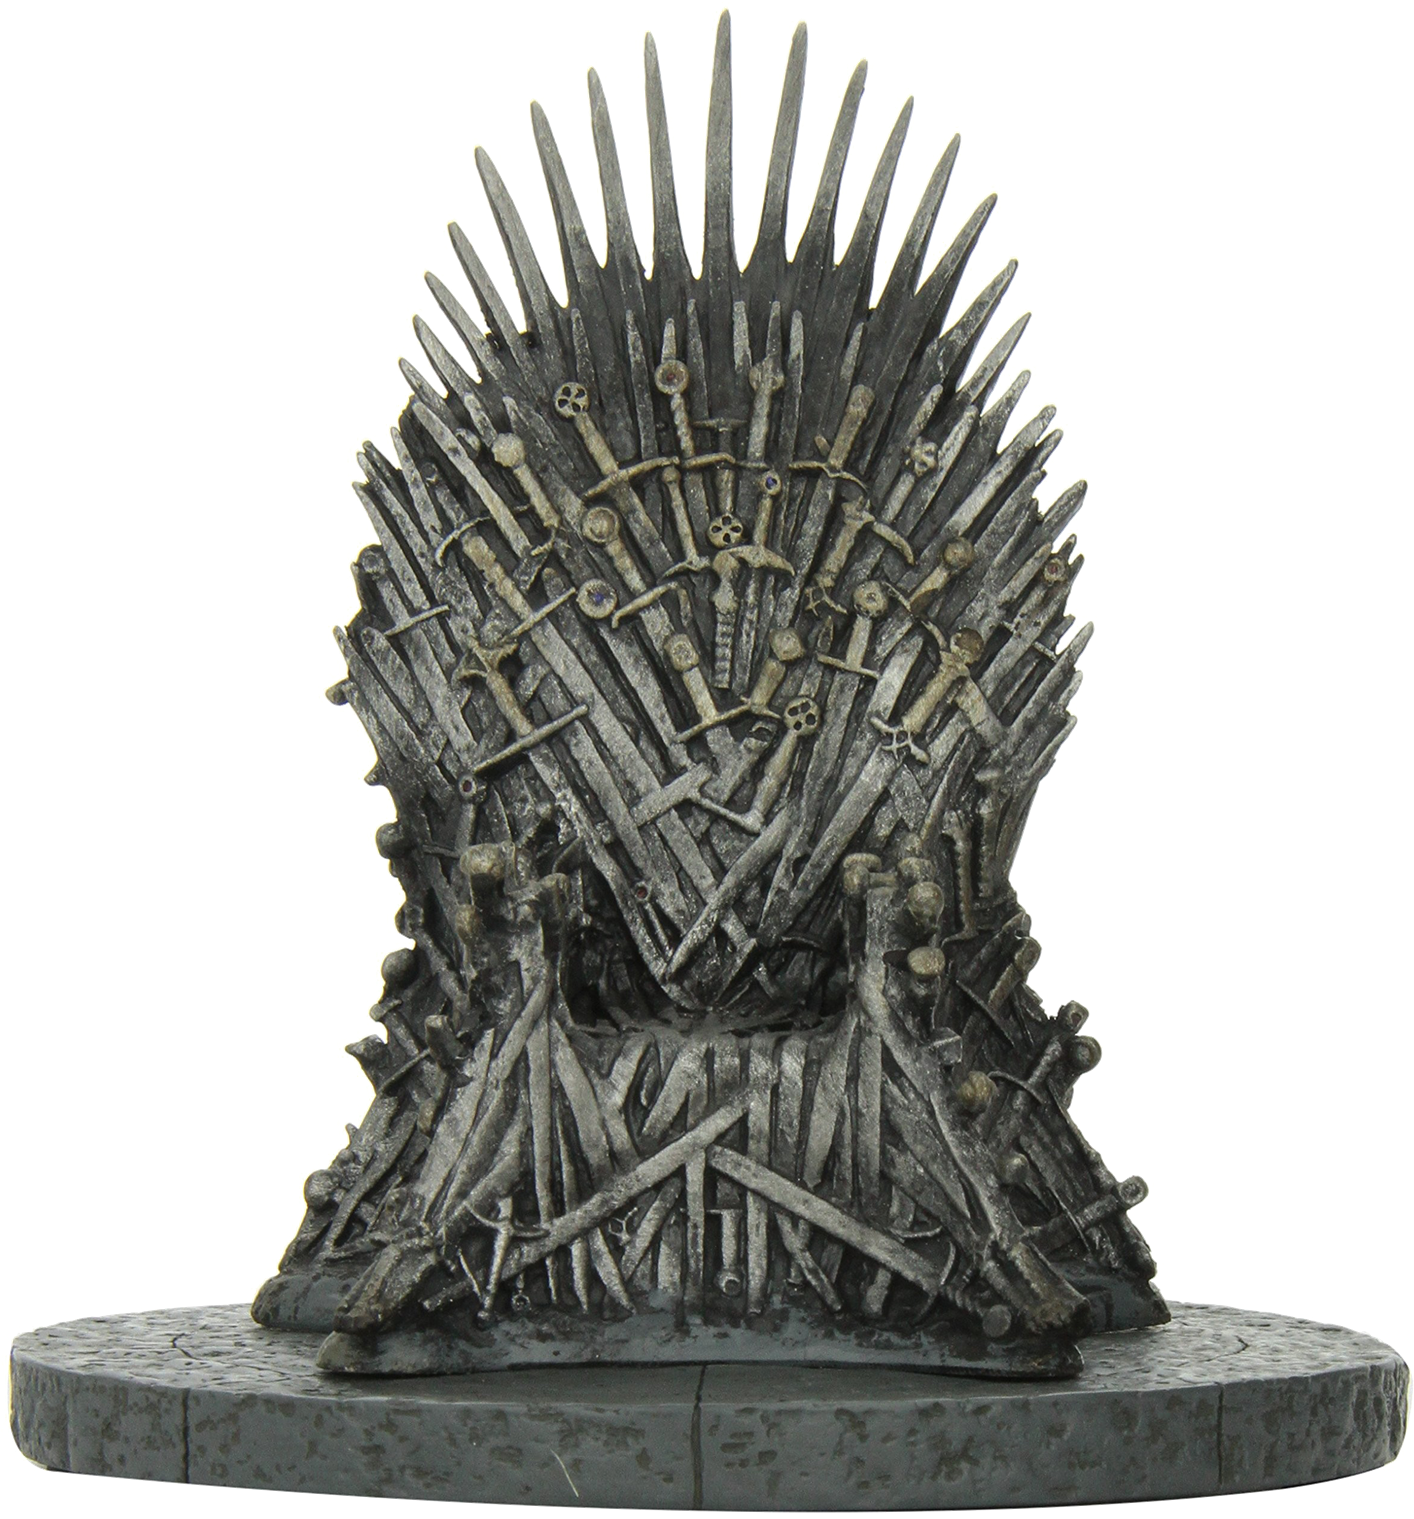 Game of thrones throne png. Download chair photo iron